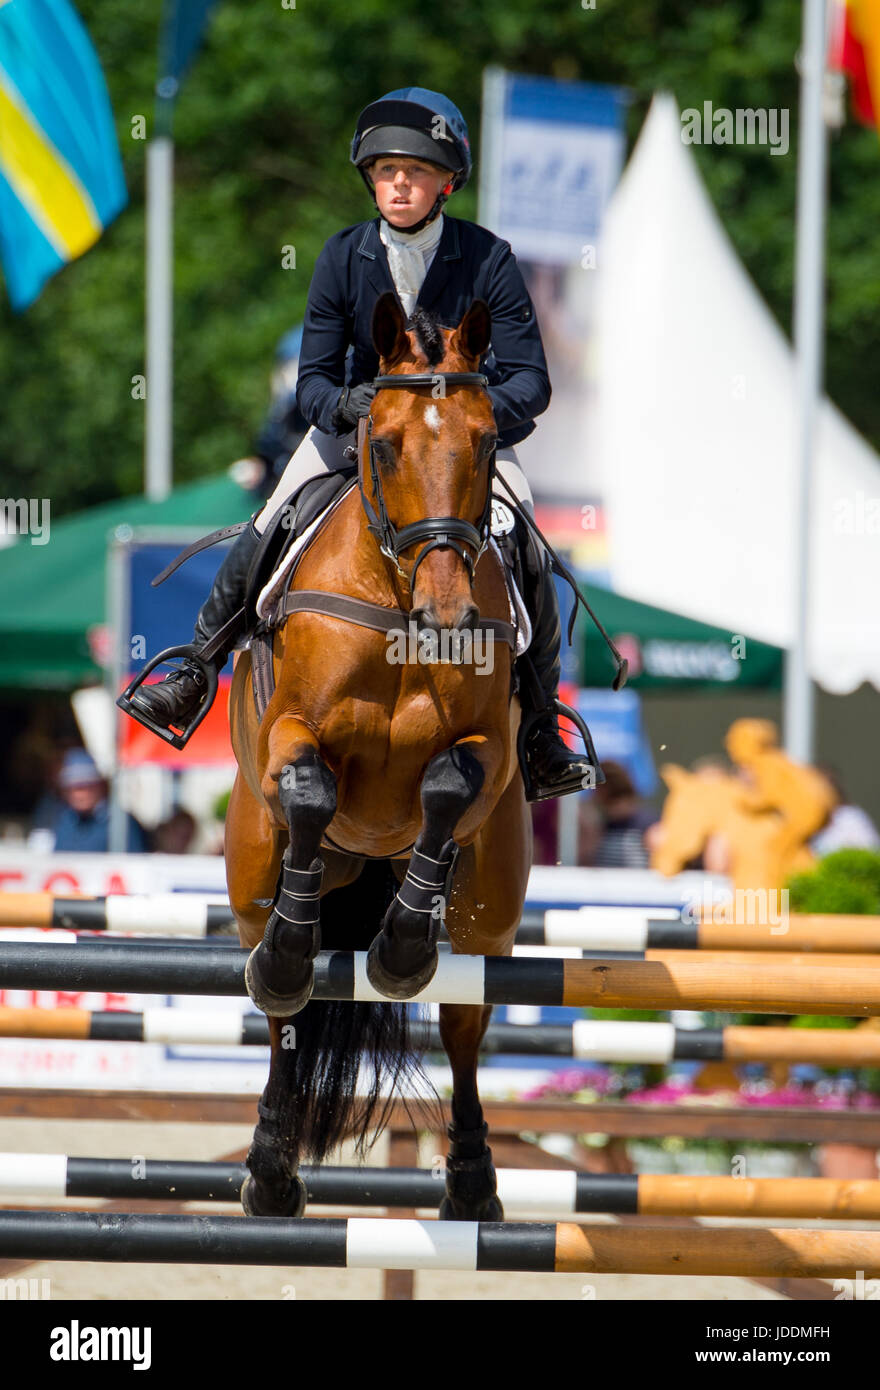 Luhmuehlen, Germany. 18th June, 2017. British eventing rider Rosalind Canter and her horse Zenshera in action during - Stock Image